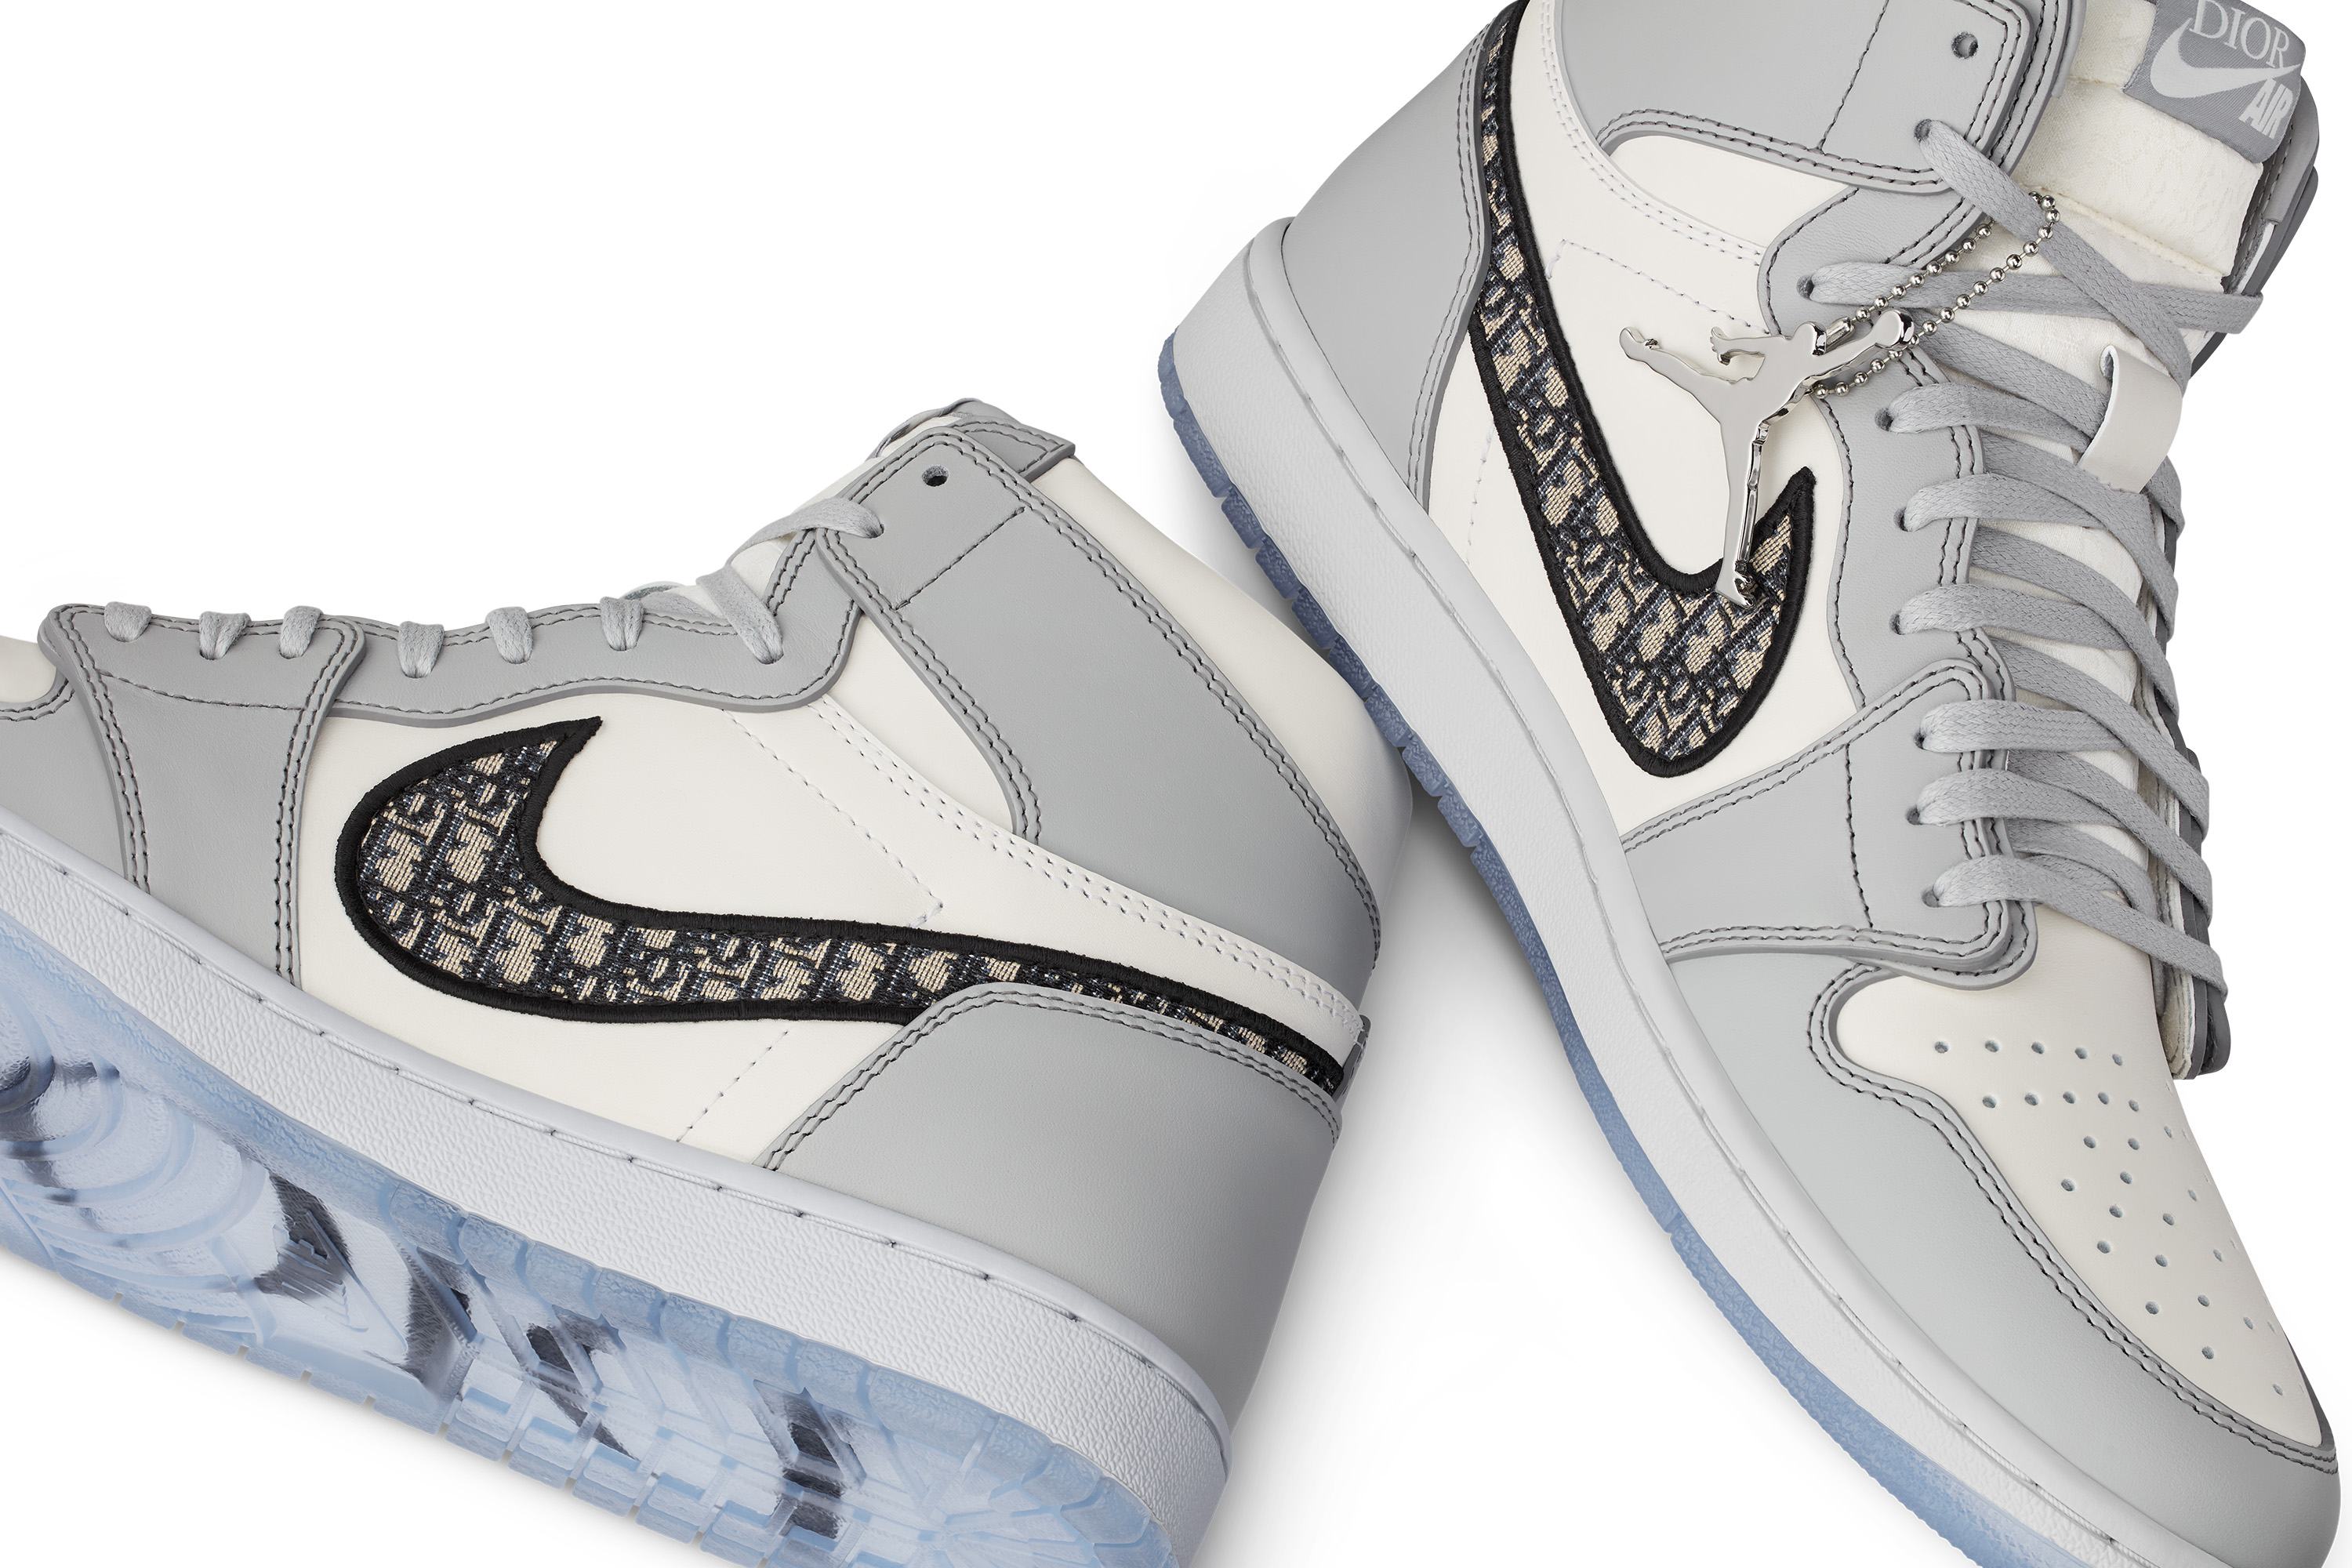 L's On Deck: The Dior x Air Jordan 1 Is Rumored To Return In 3 New Colorways